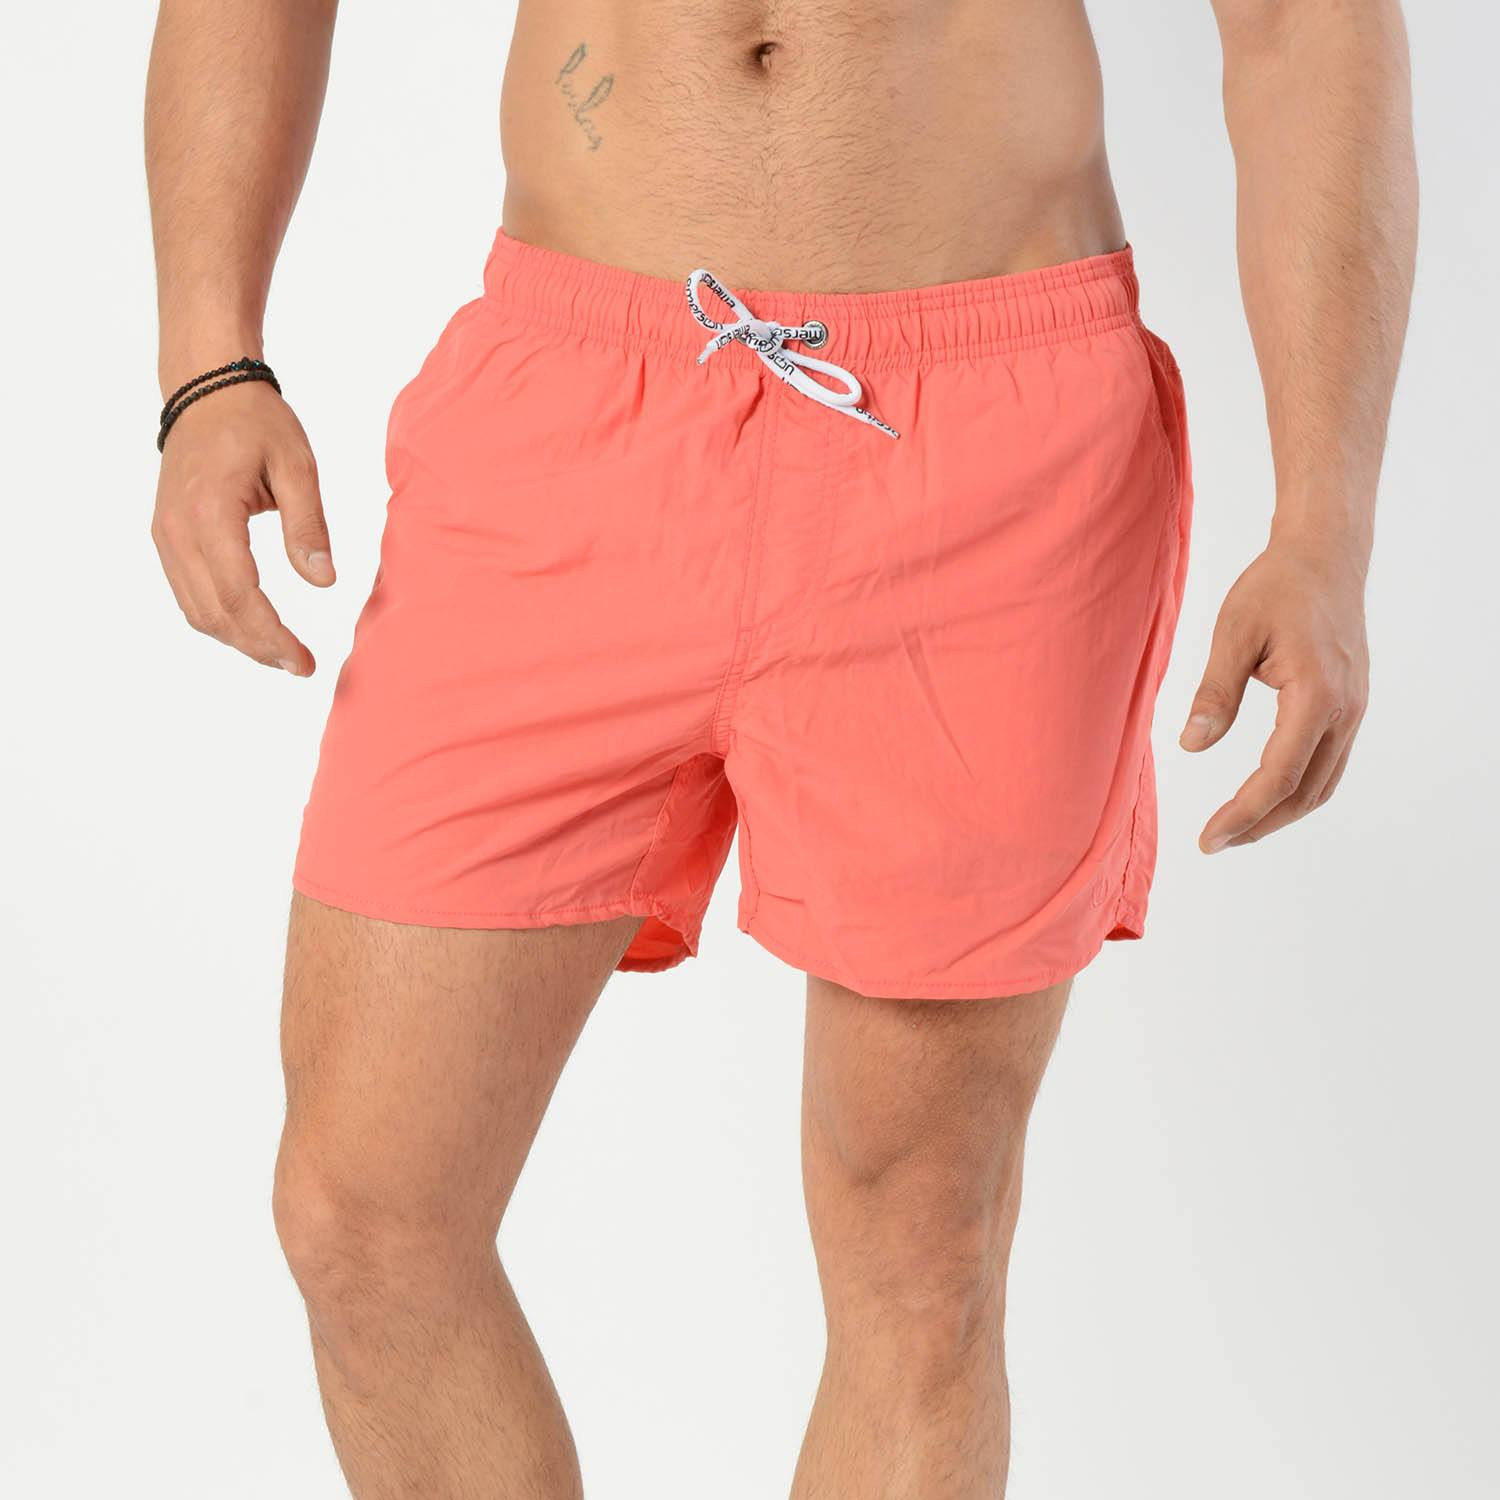 Emerson Men's volley shorts (9000005363_2845)